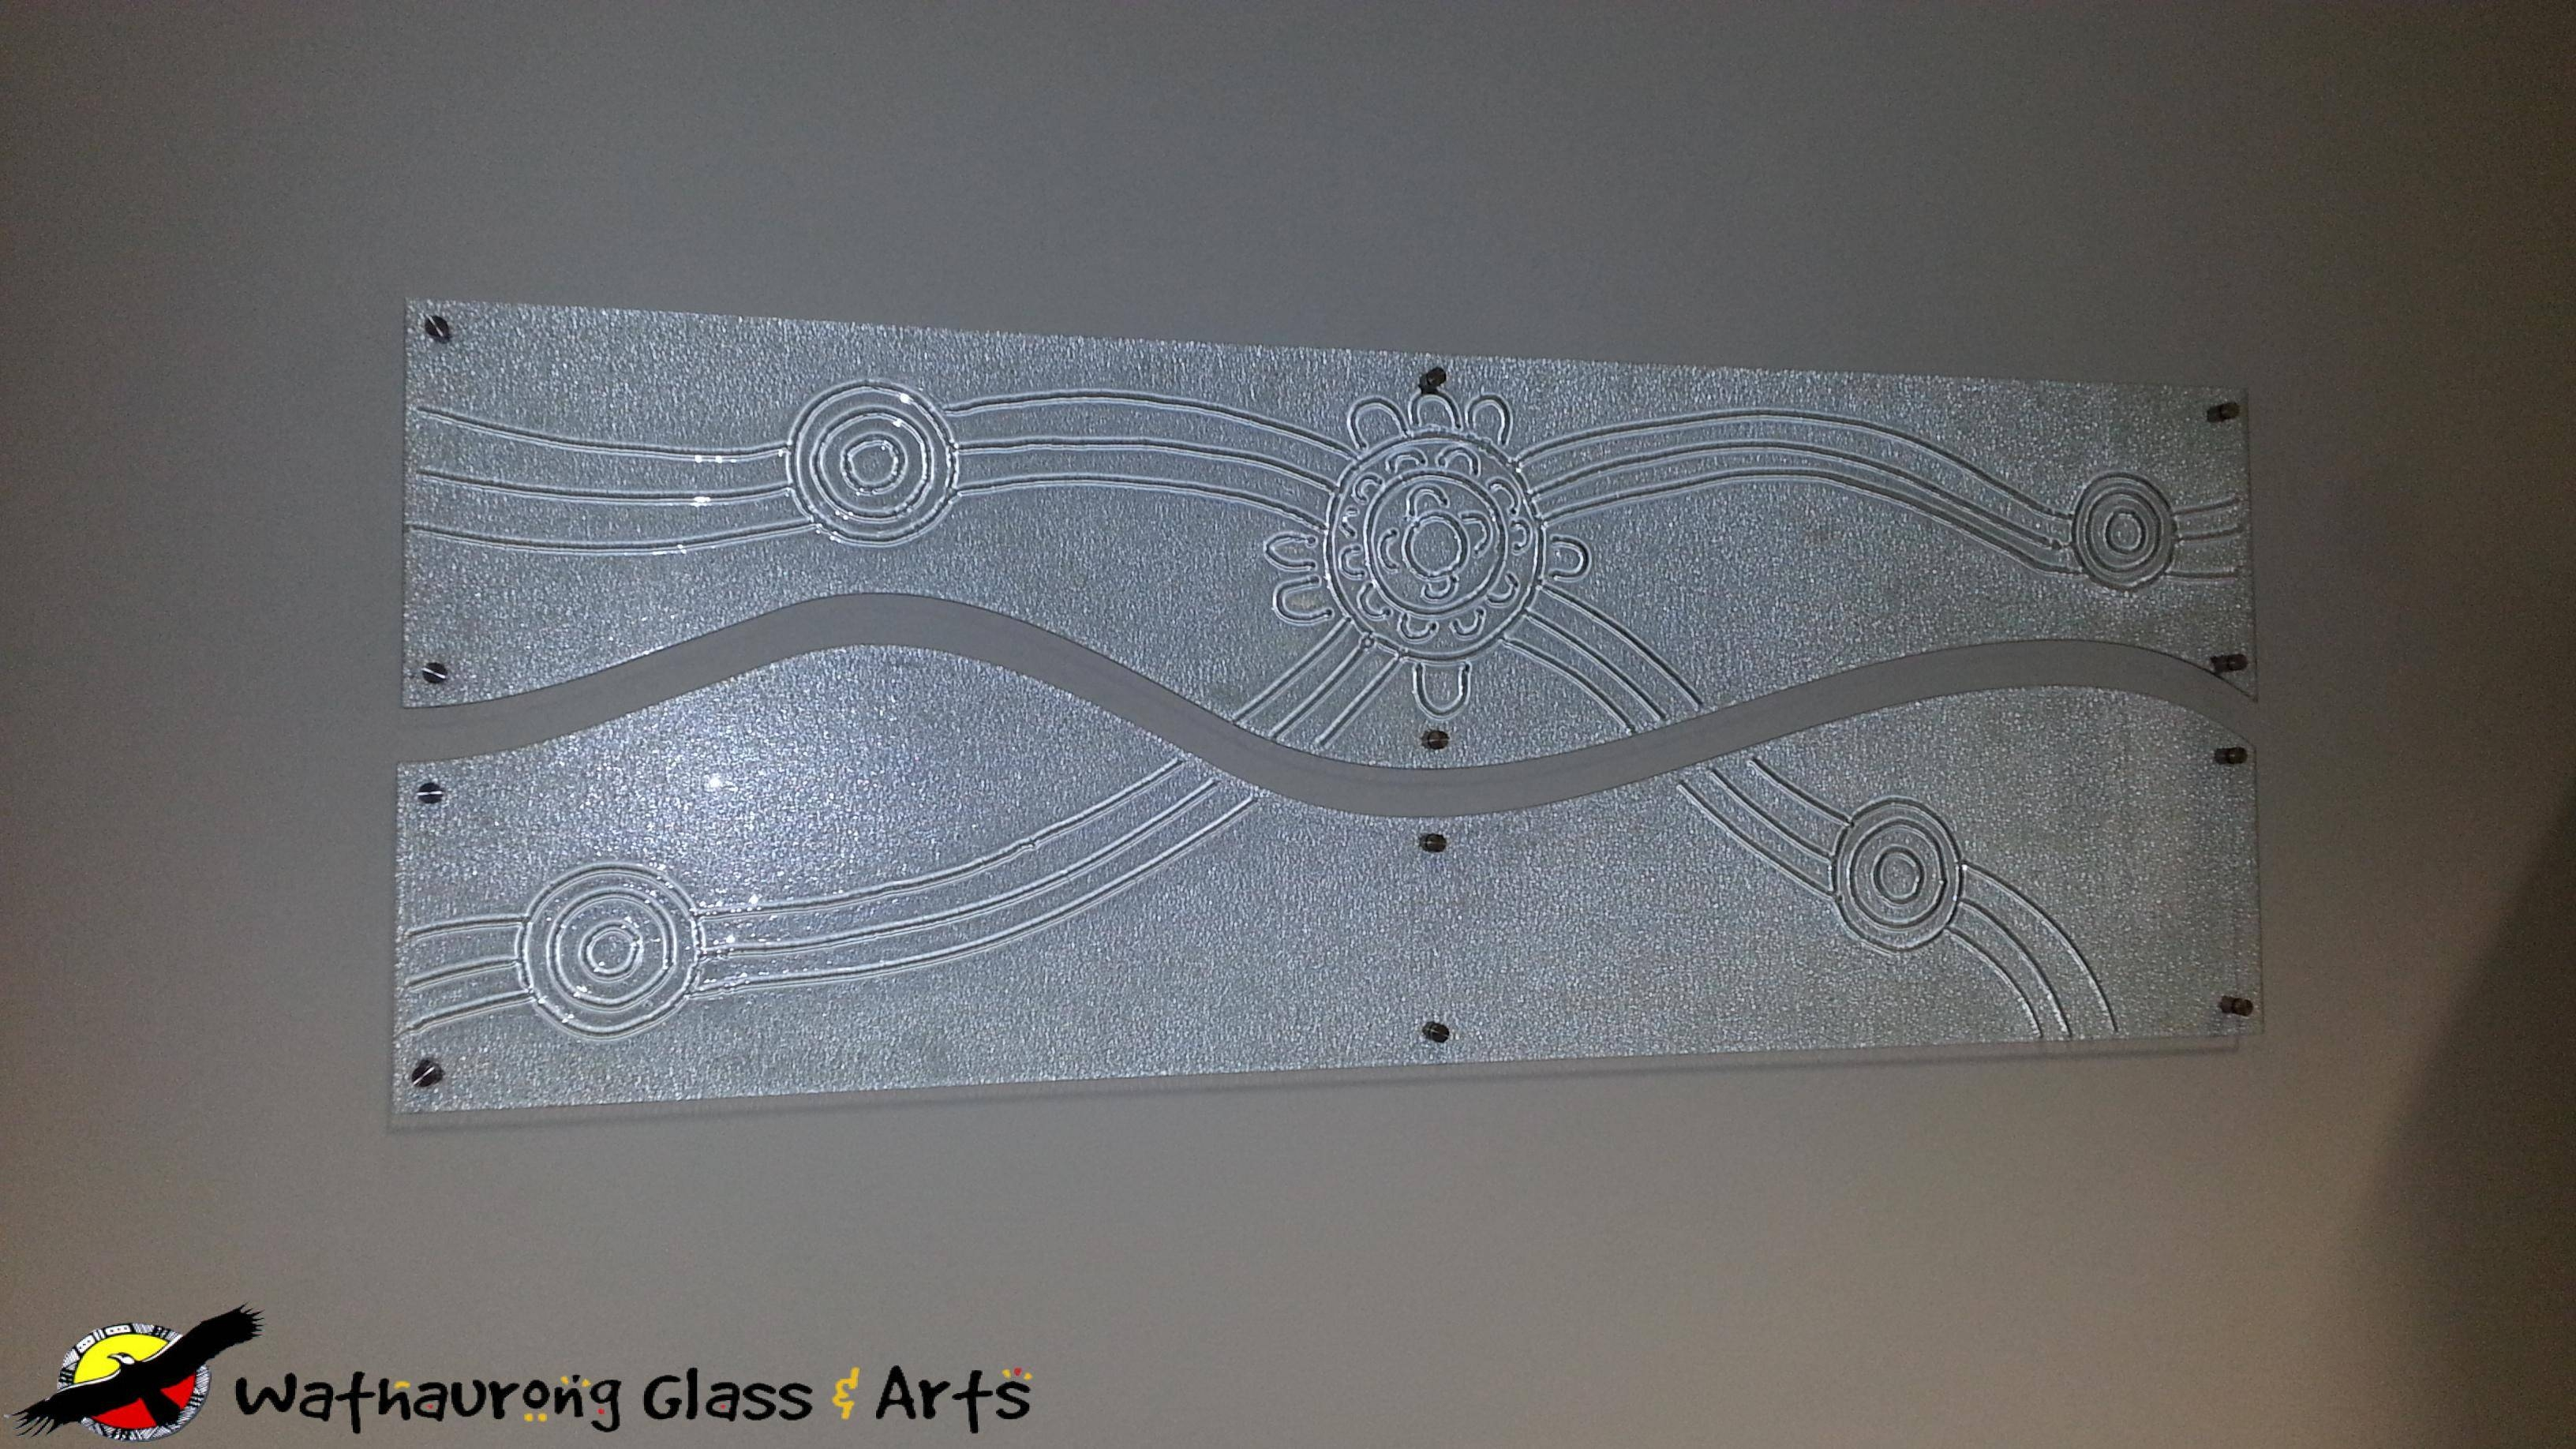 Aboriginal Glass Art Panel – Wathaurong Glass Within 2018 Glass Wall Art Panels (View 3 of 20)